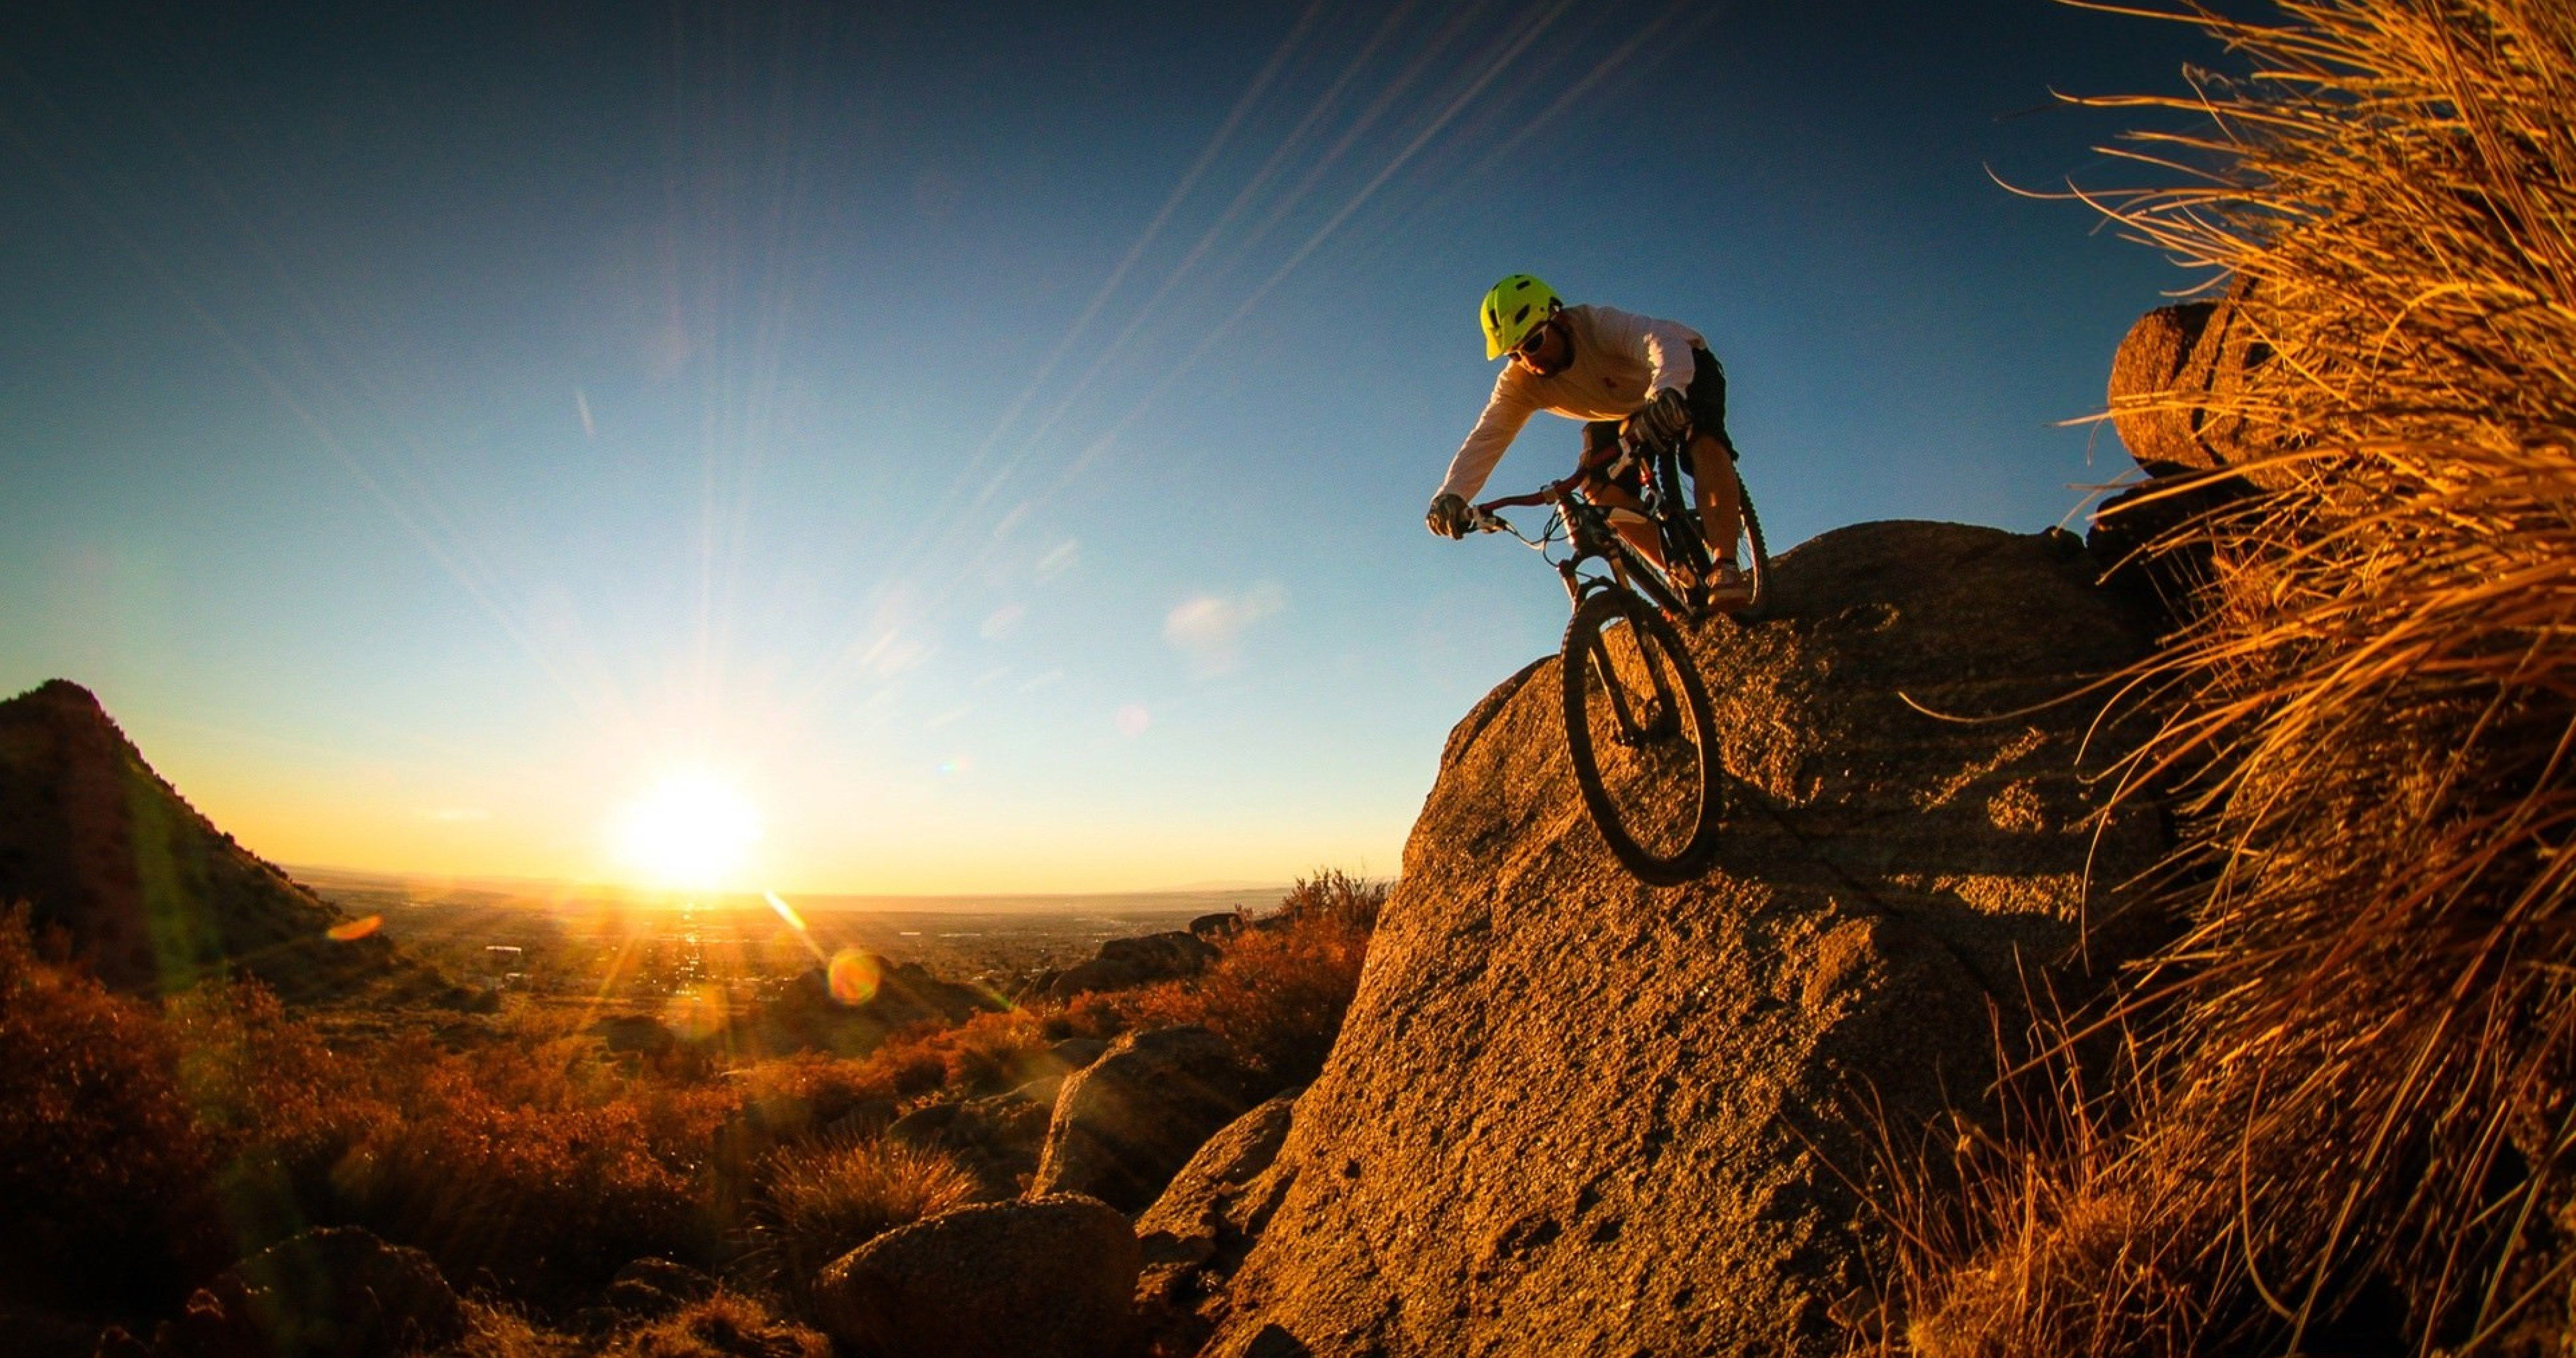 Extreme Sport Mountain Bike 4k Ultra Hd Wallpaper